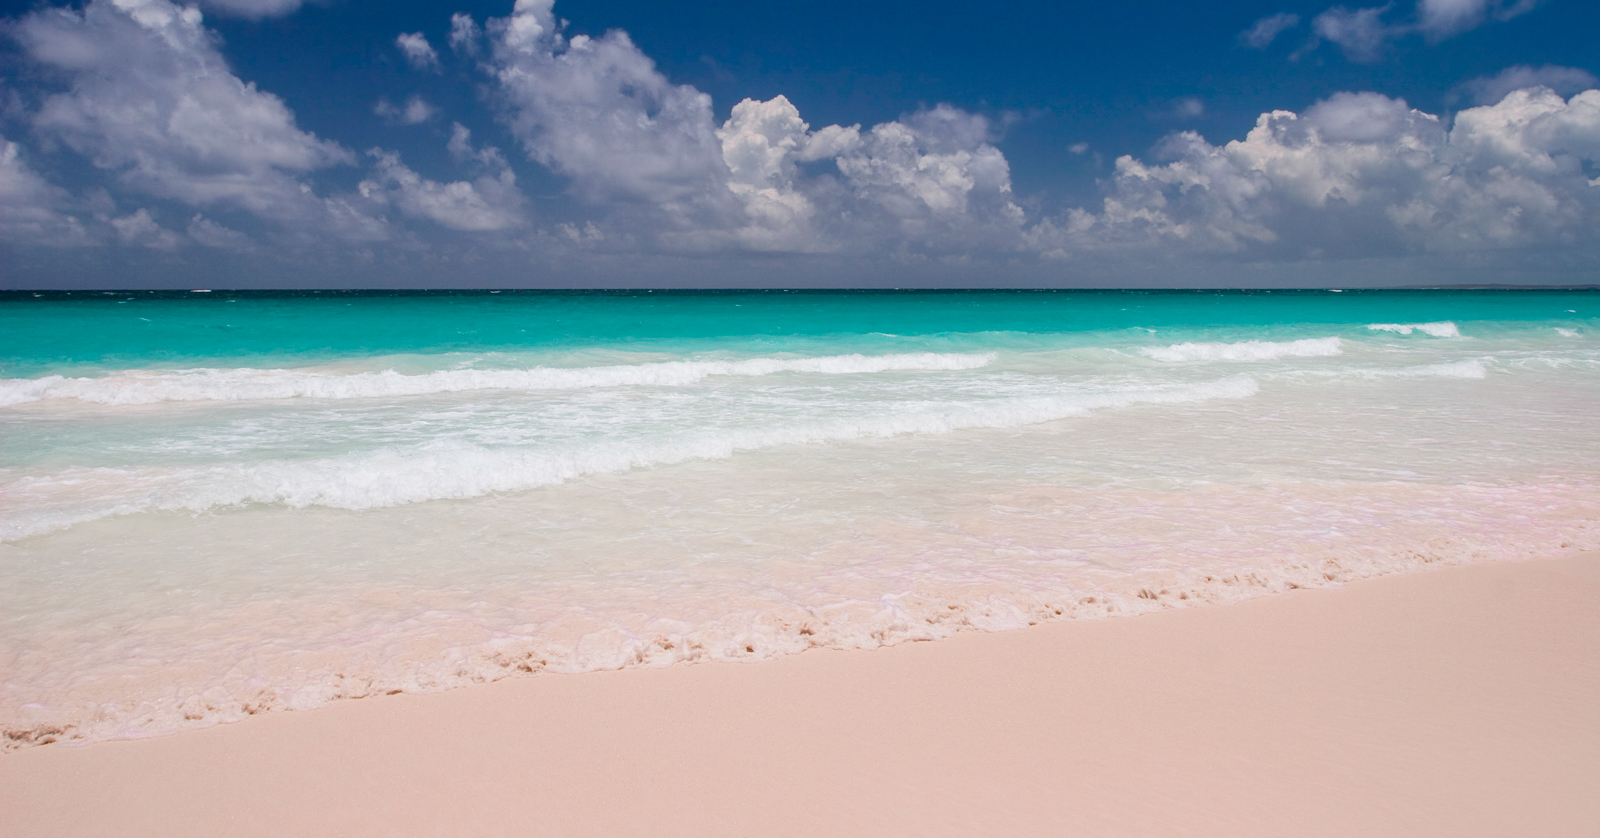 Harbour island bahamas and pink sands beach travel guide for Bahamas pink sand beaches